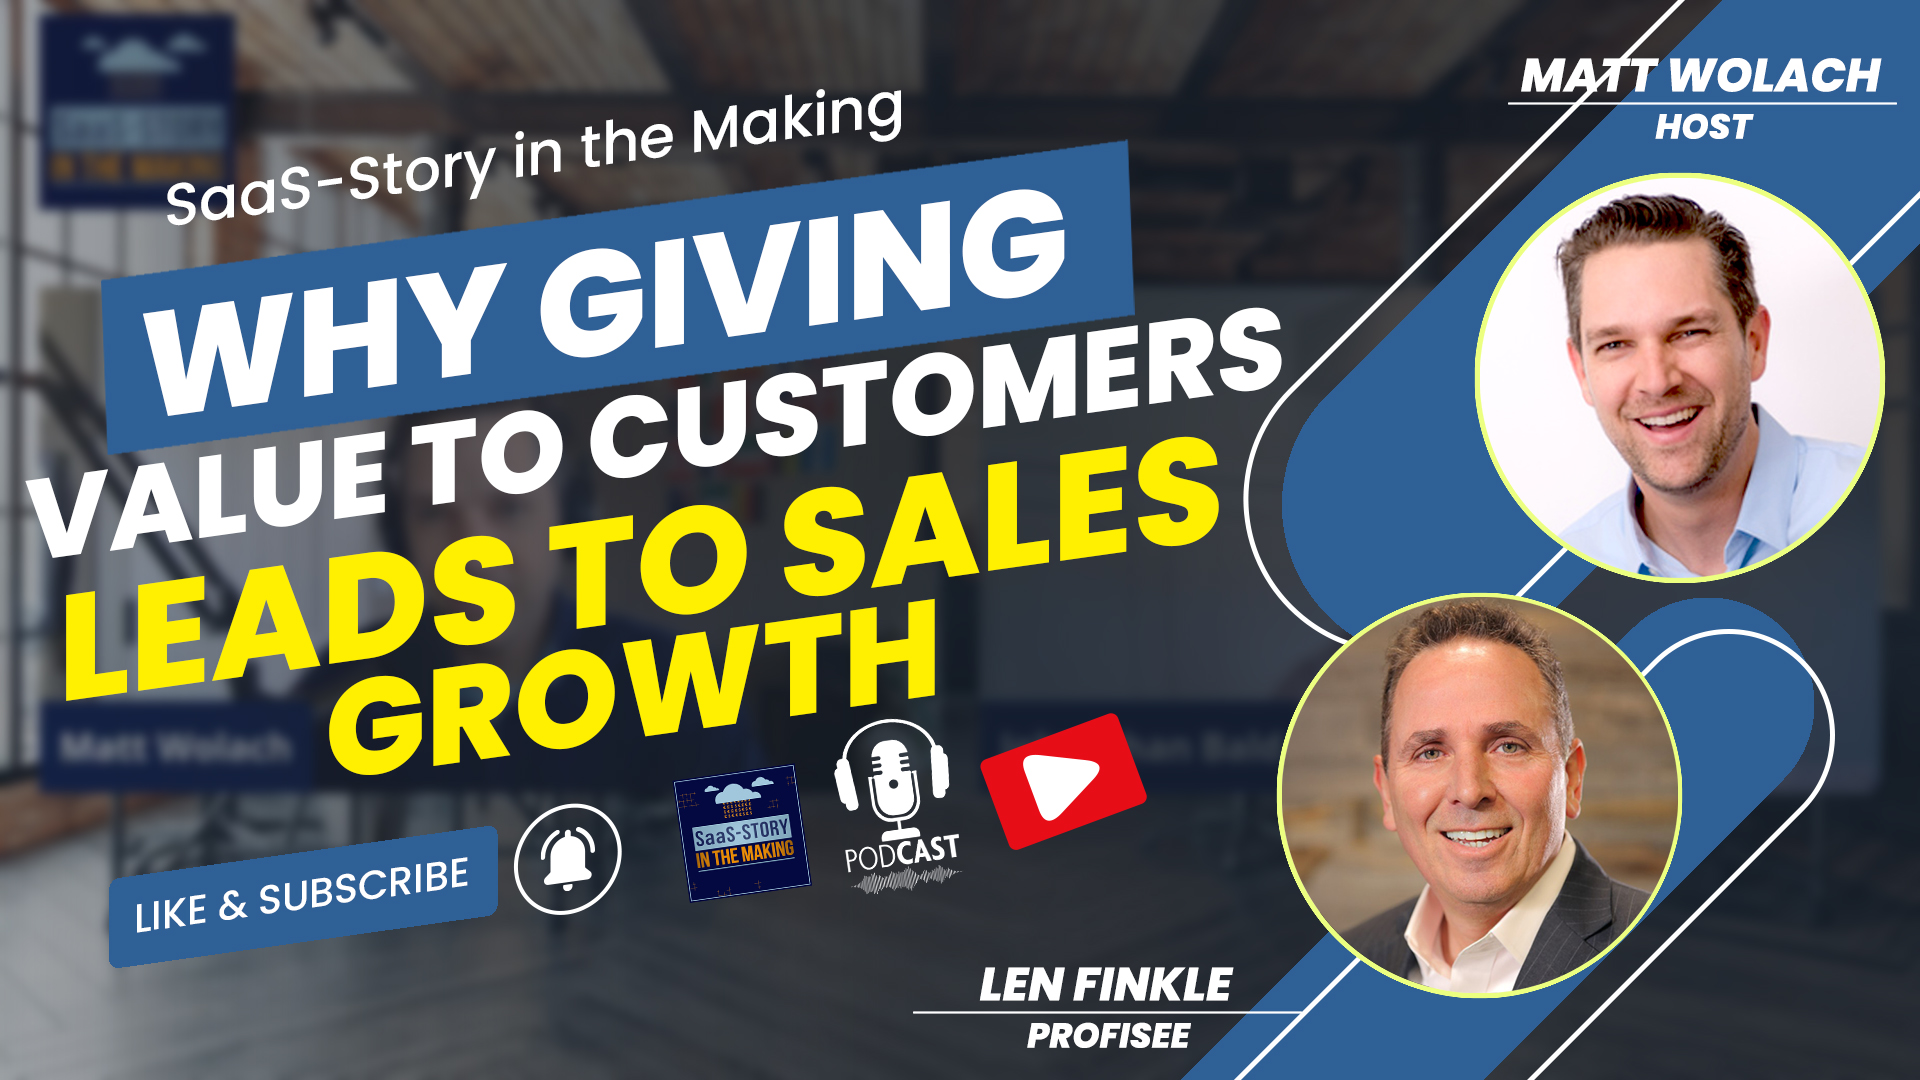 Image containing text that says Why Giving Value to Customers Leads to Sales Growth with an image of Matt Wolach and Len Finkle.